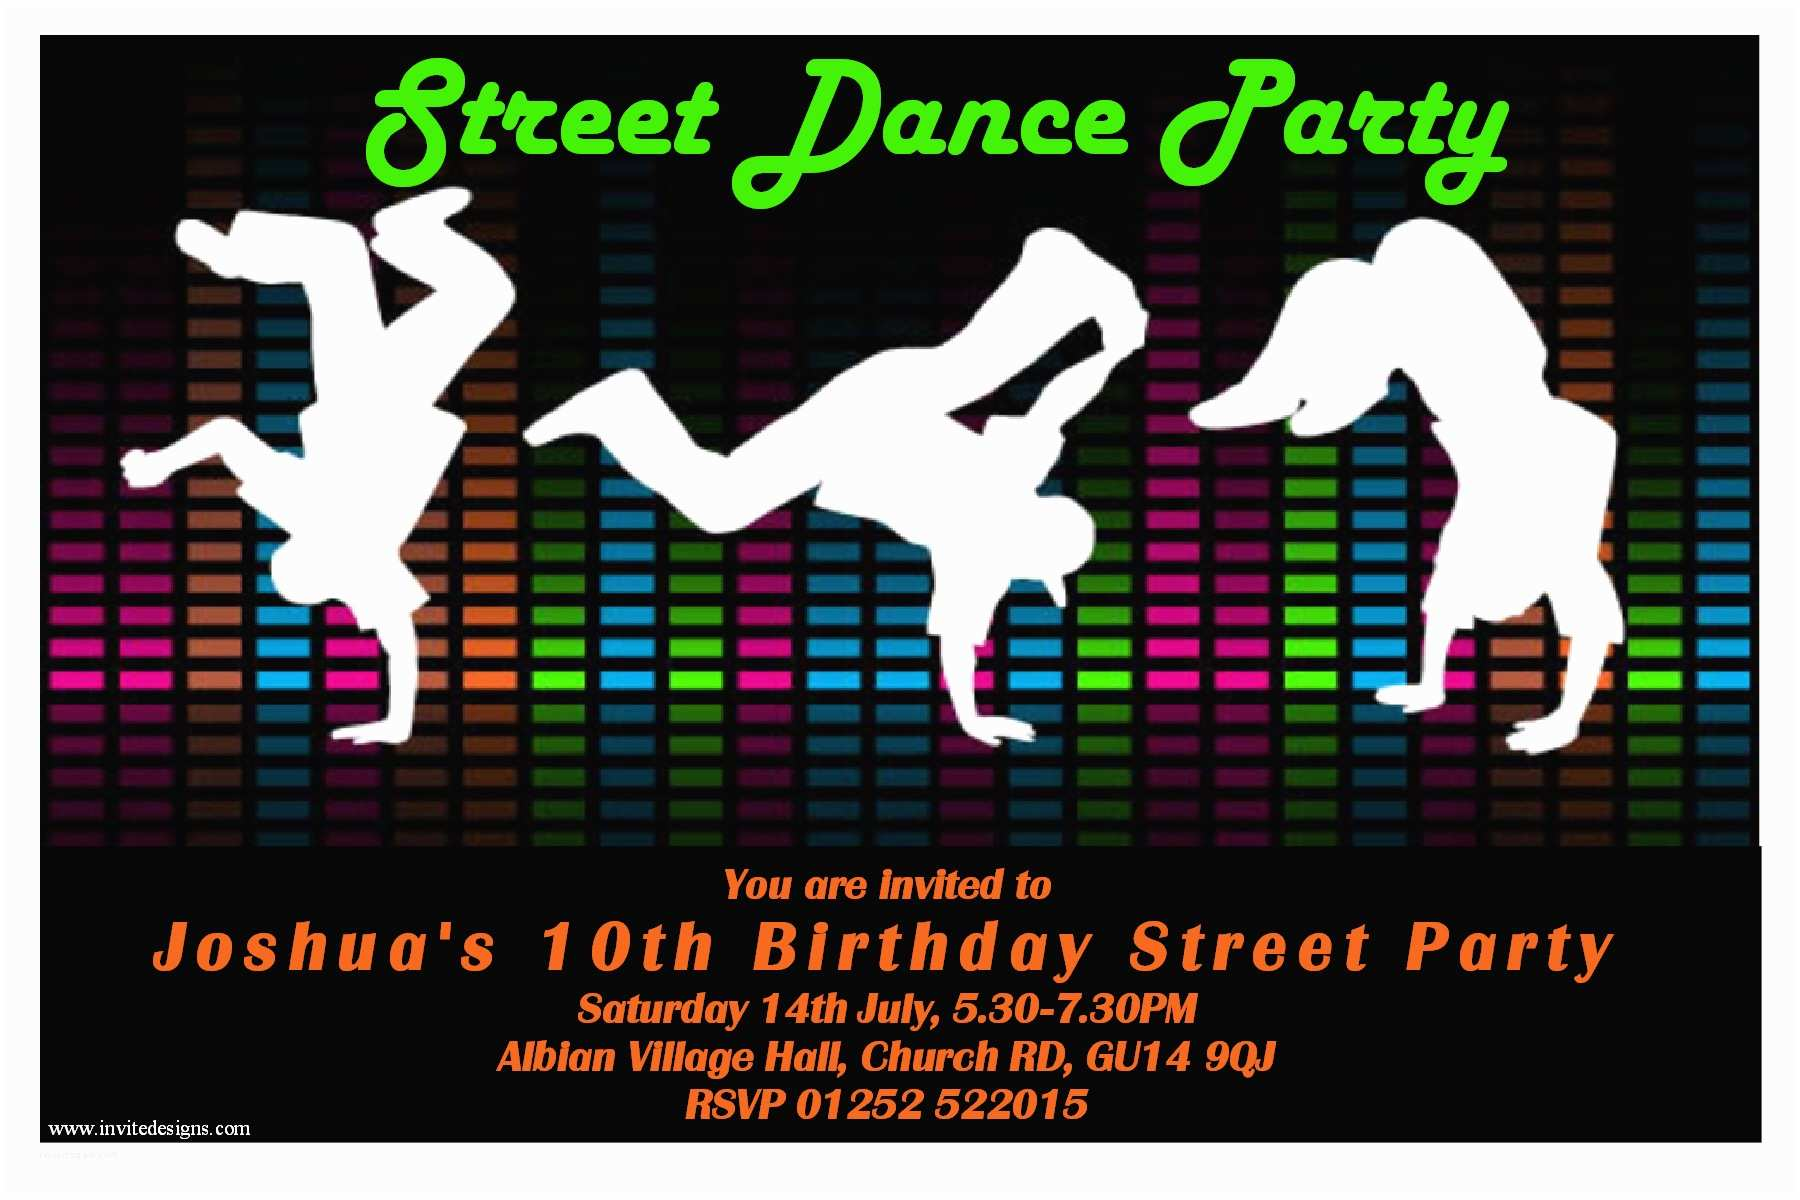 Dance Party Invitations Free Printable Birthday Invitations for Adult